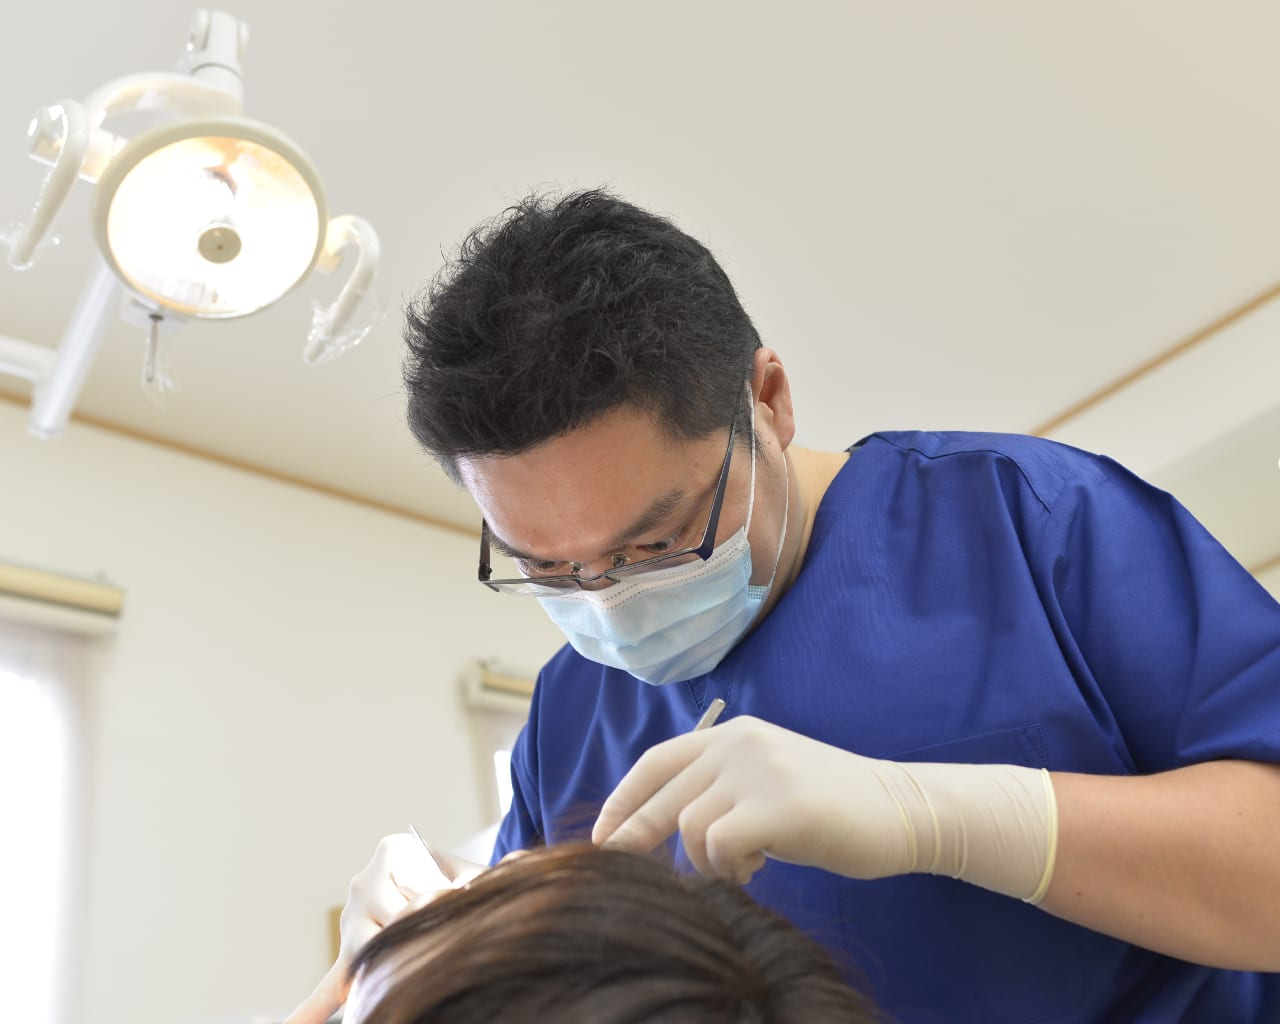 wisdom tooth removal process in Singapore being done